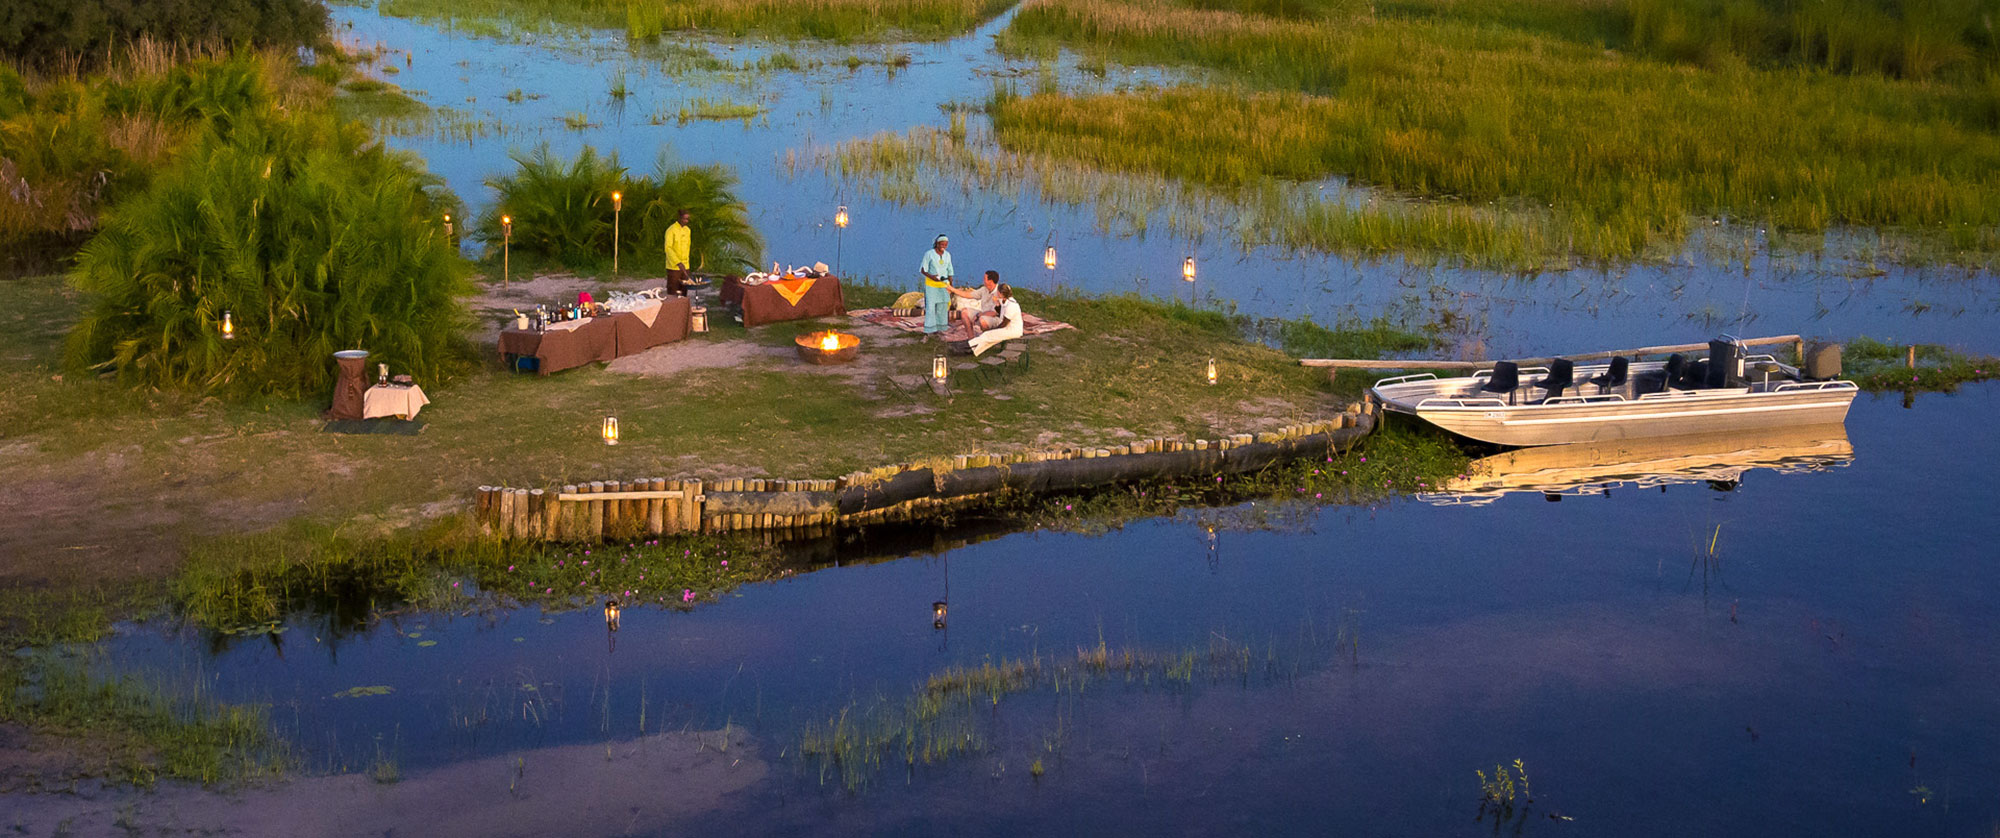 Okavango Delta Packages - Luxury Safari - Picnic on an Okavango Delta Island